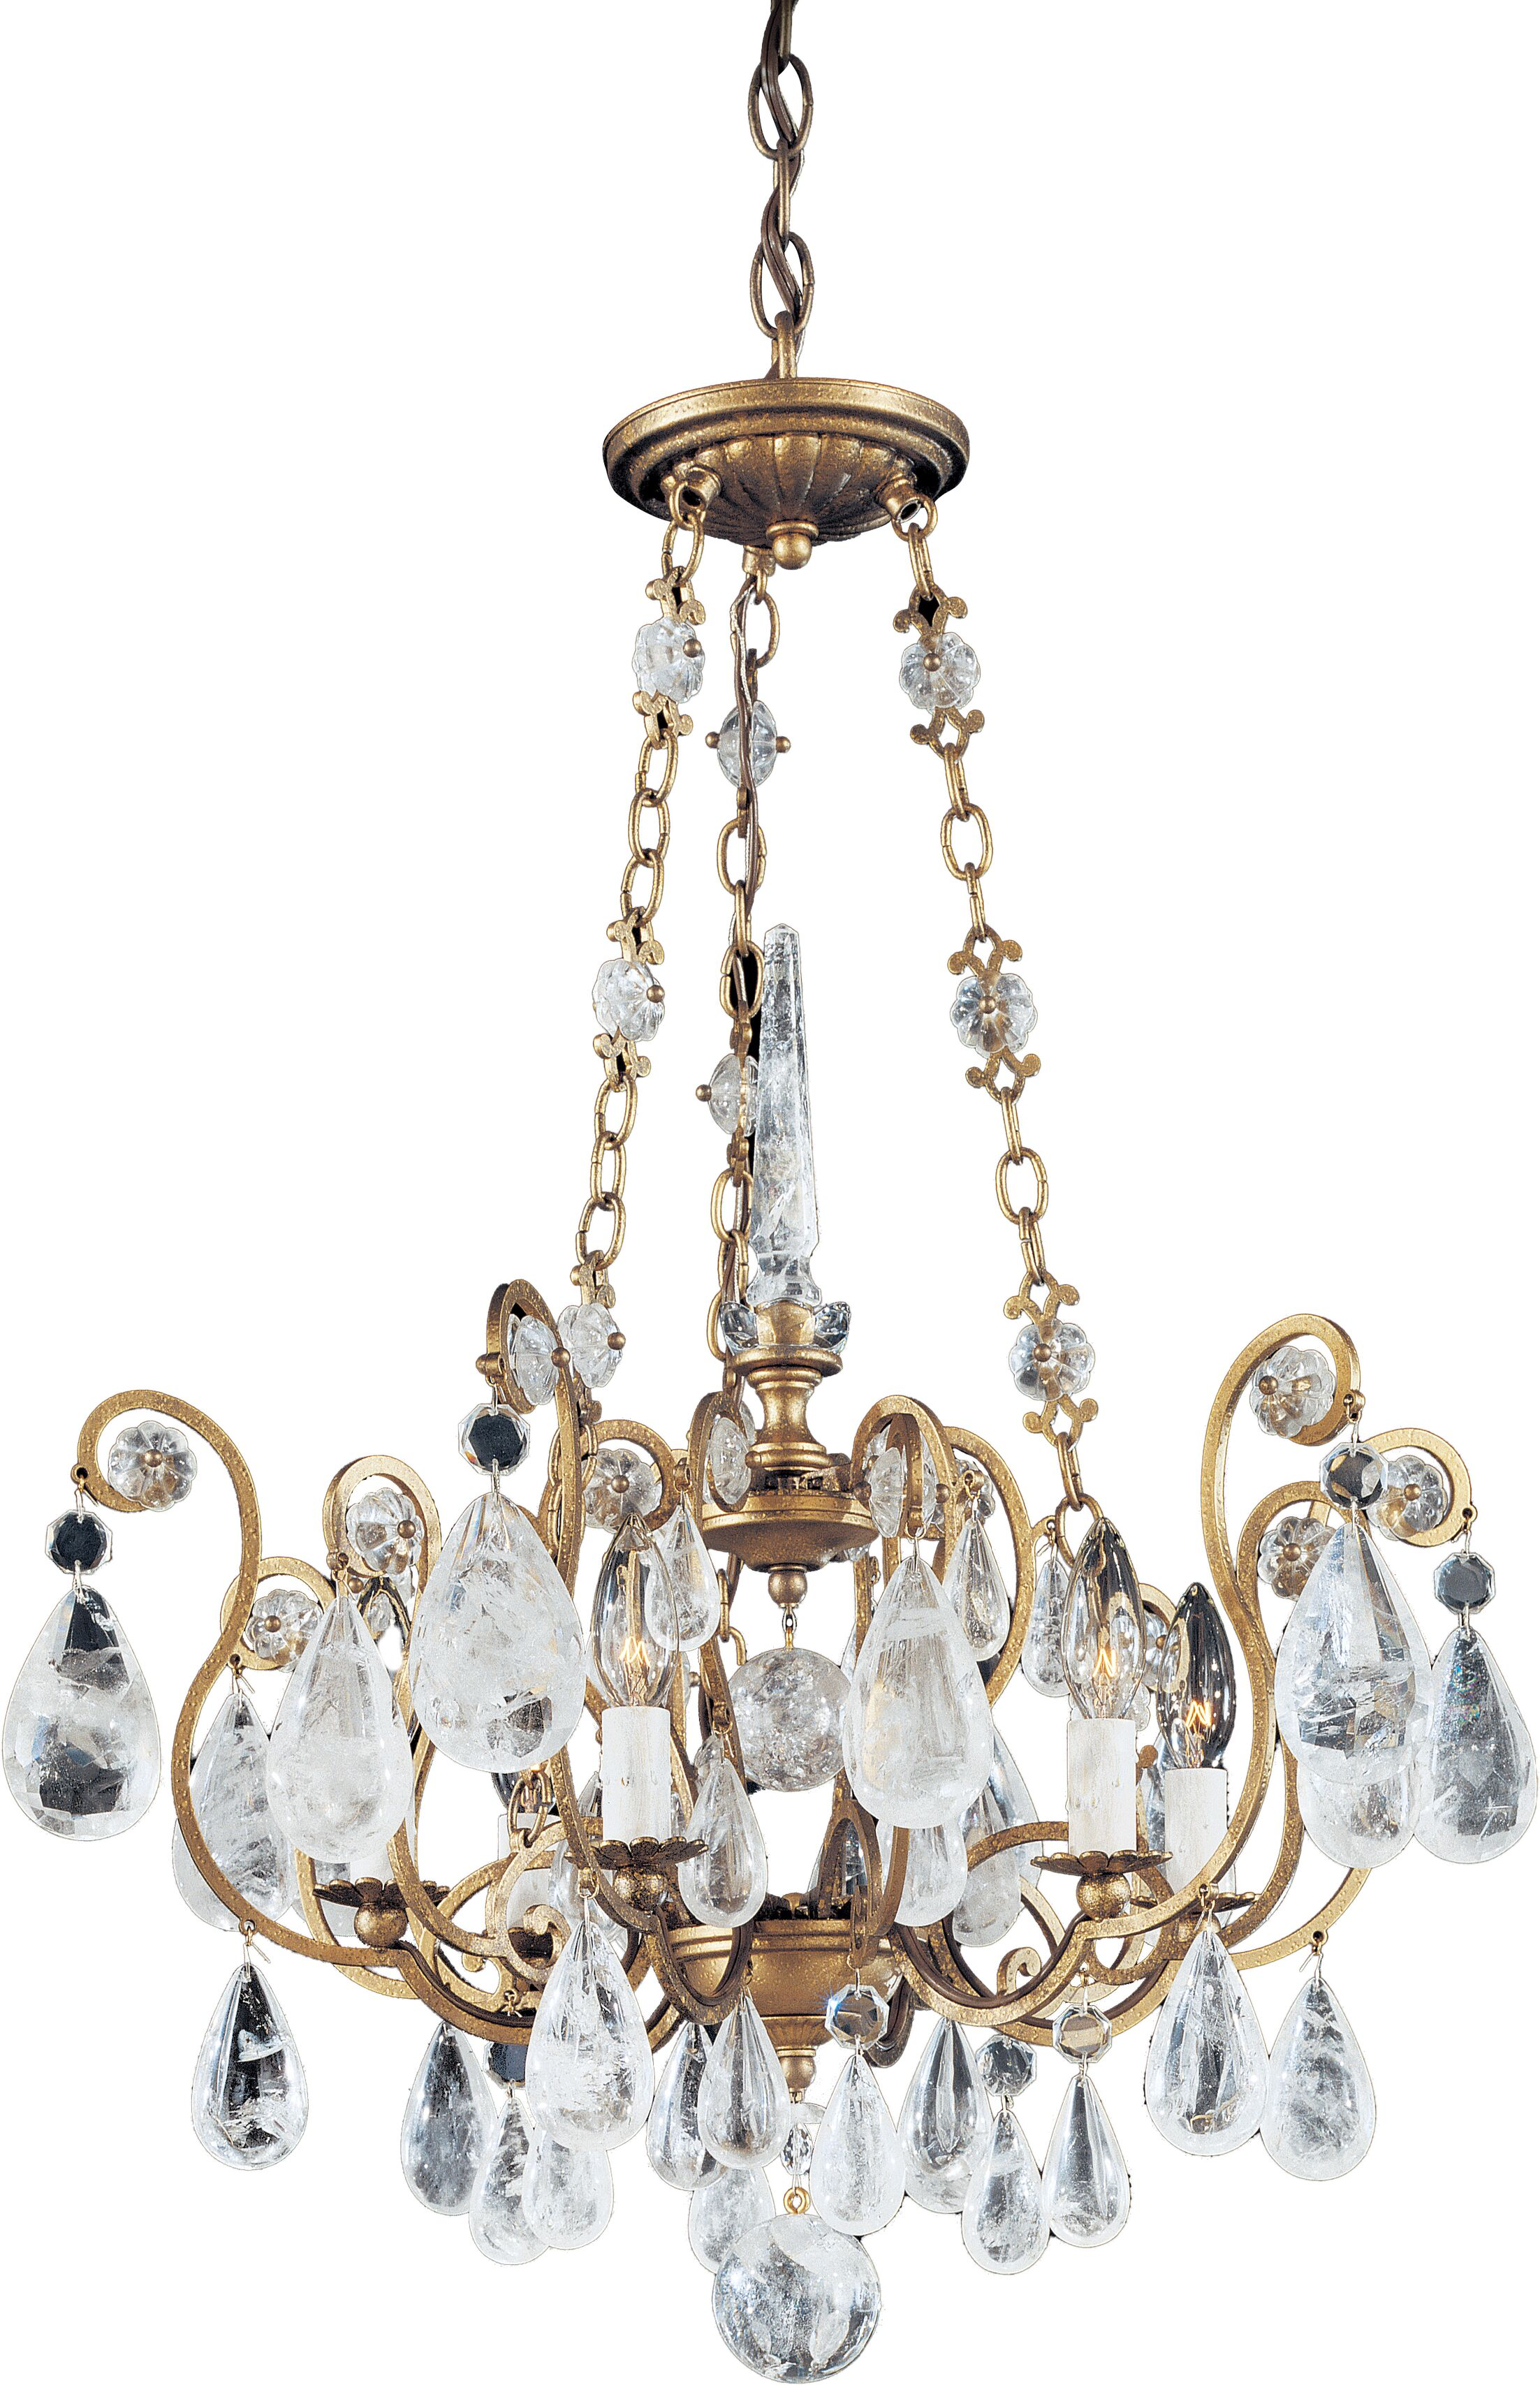 Versailles Rock Crystal 6-Light Candle Style Chandelier Finish: French Gold, Crystal: Rock Crystal Clear